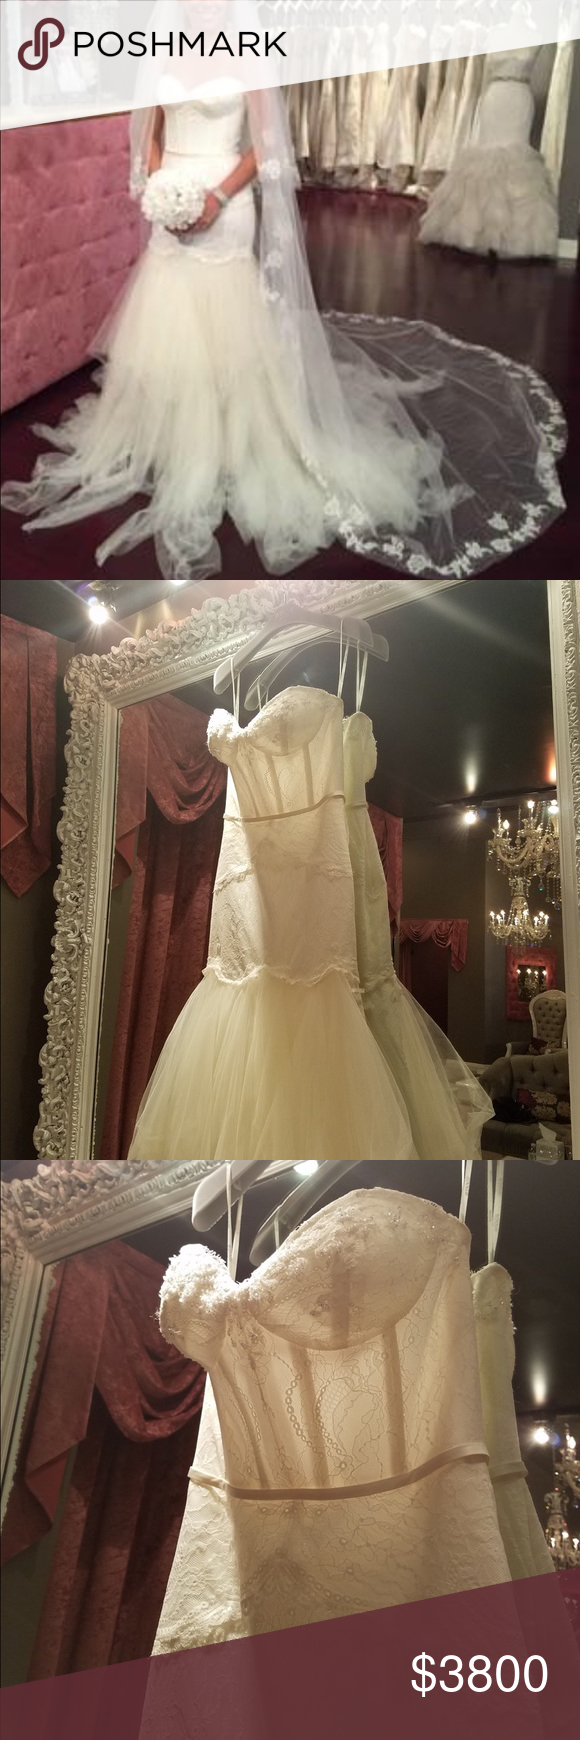 My never been worn wedding dress, veil for sale NWT | Winnie couture ...